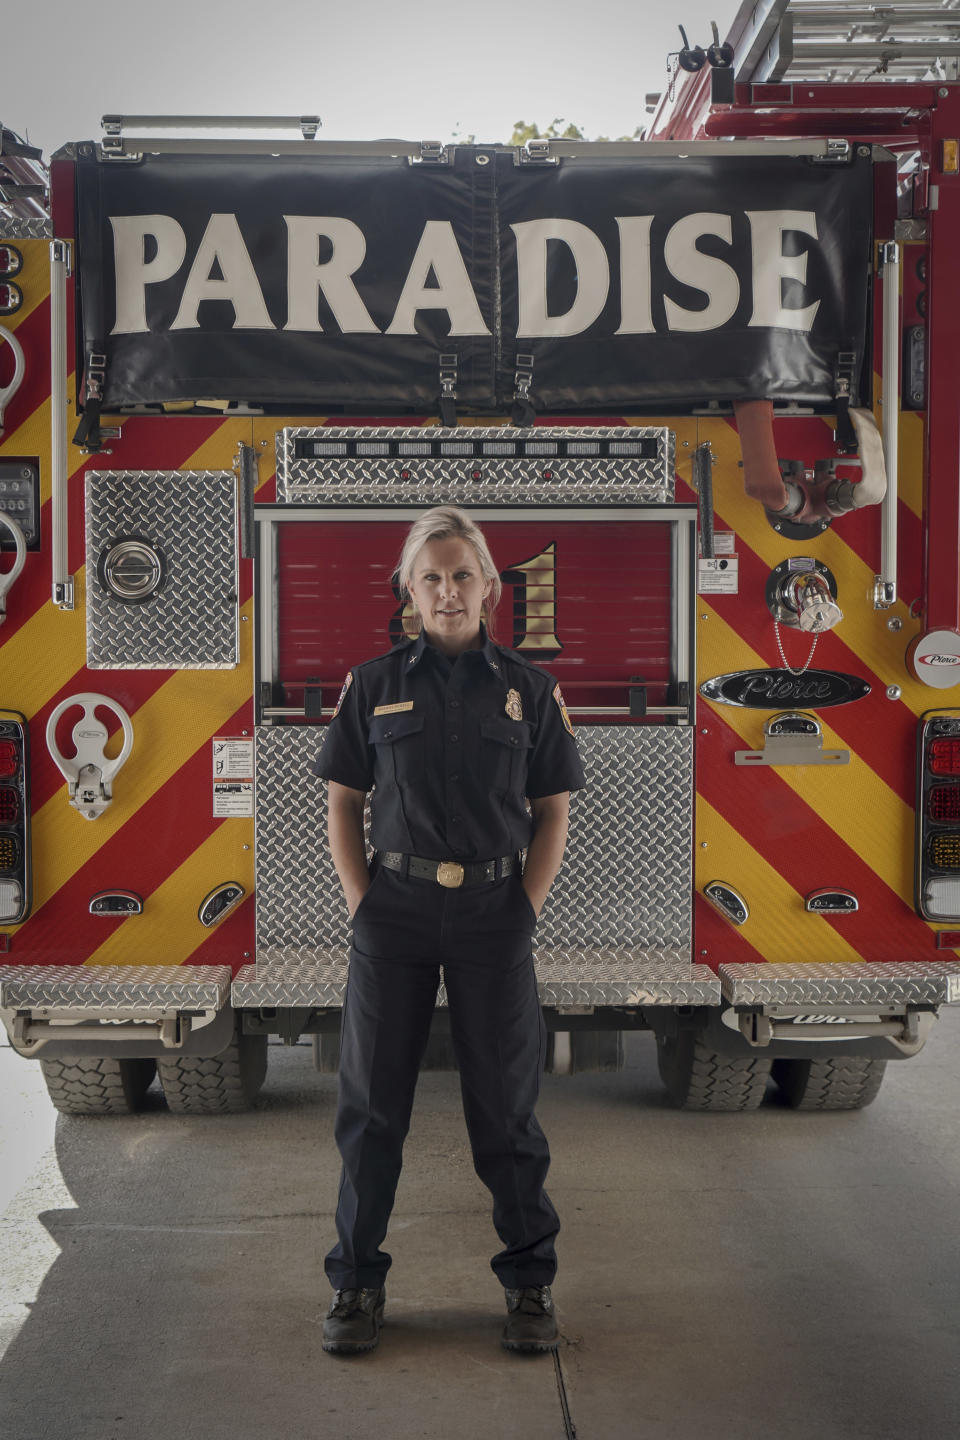 """This image released by National Geographic shows firefighter Shawna Powell posing in front of a Paradise Fire Department fire truck in Paradise, Calif., for the documentary """"Rebuilding Paradise."""" A new documentary by director Ron Howard captures a town's tough recovery following one of the most devastating wildfires in California's history. (Sarah Soquel Morhaim/National Geographic via AP)"""